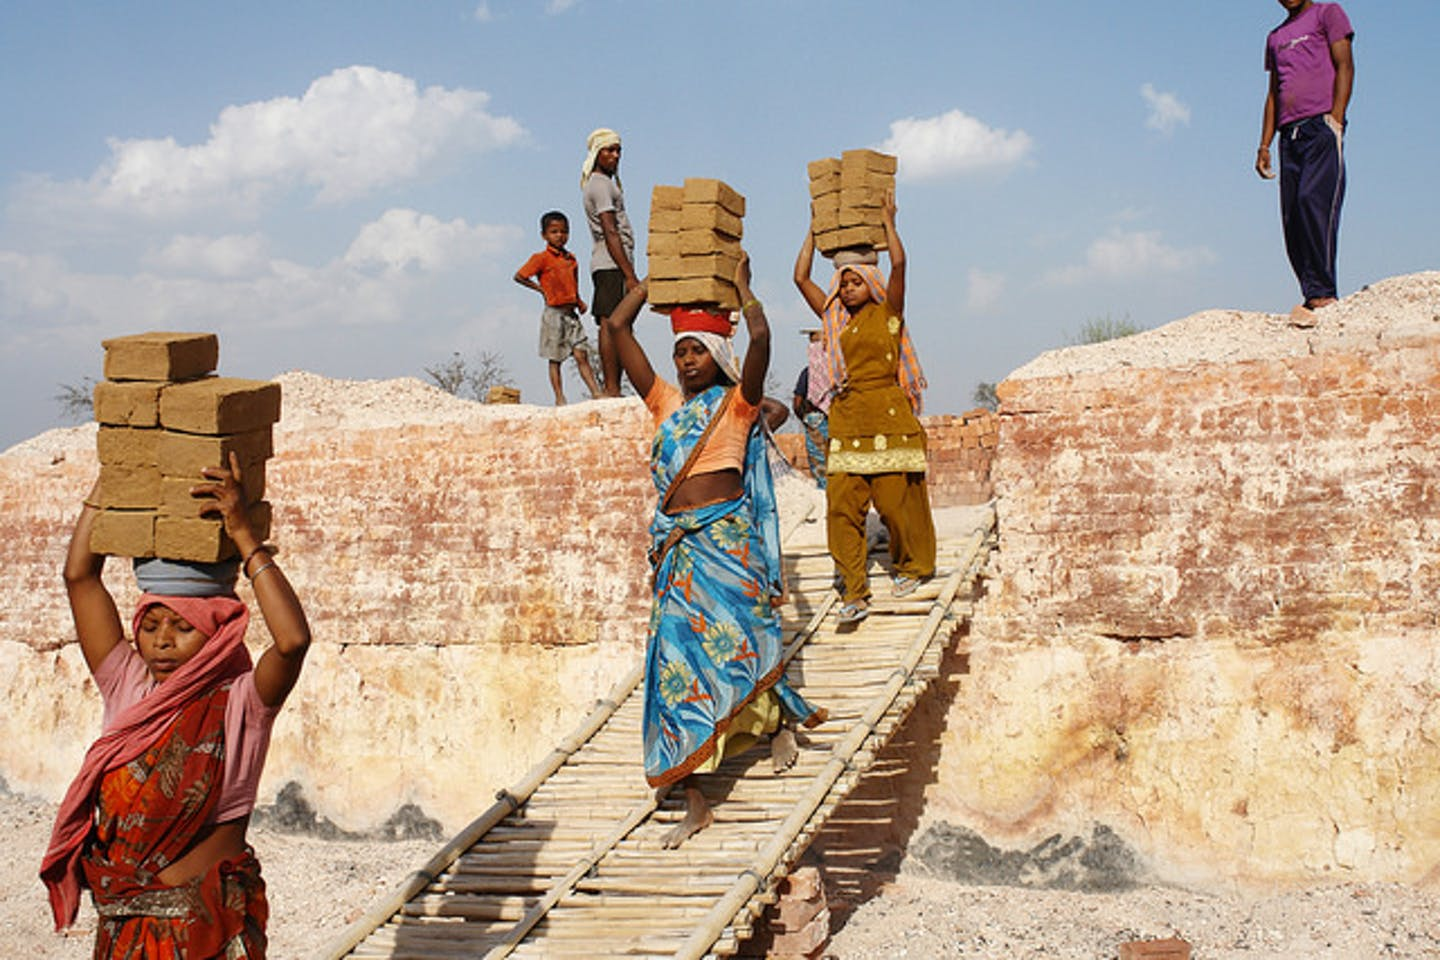 bonded brick kiln women workers in India